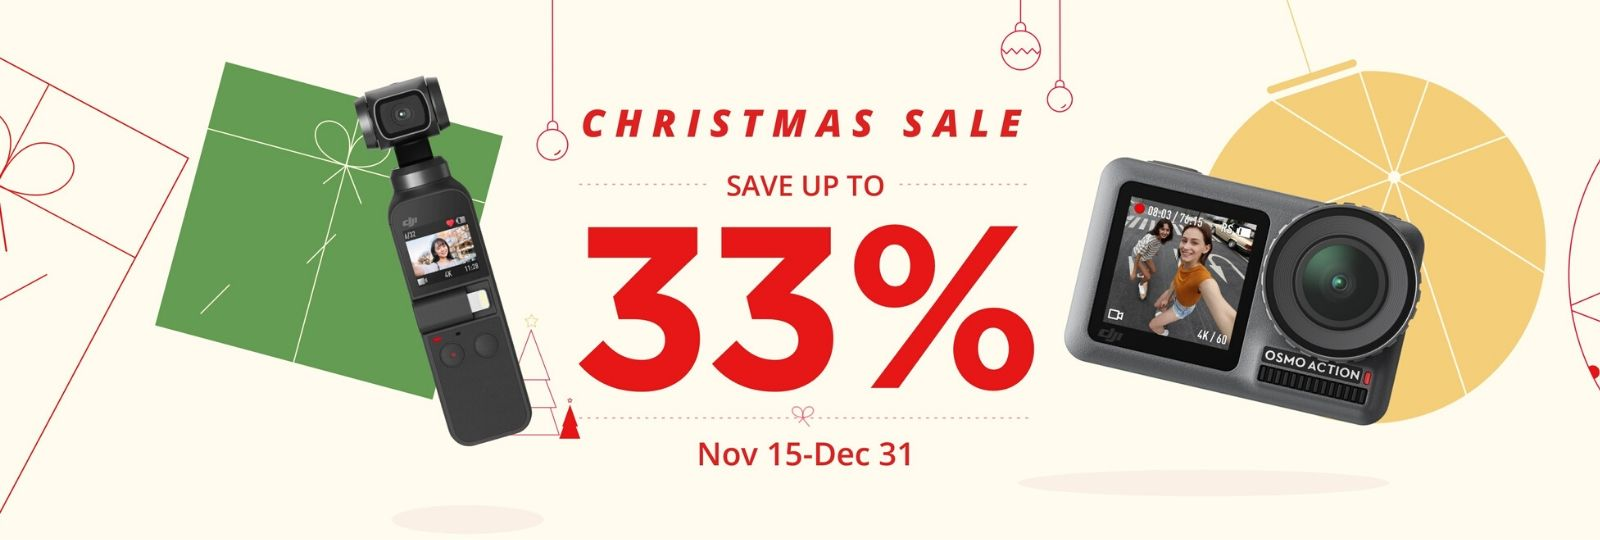 DJI Christmas Sale - Save Up to 33%